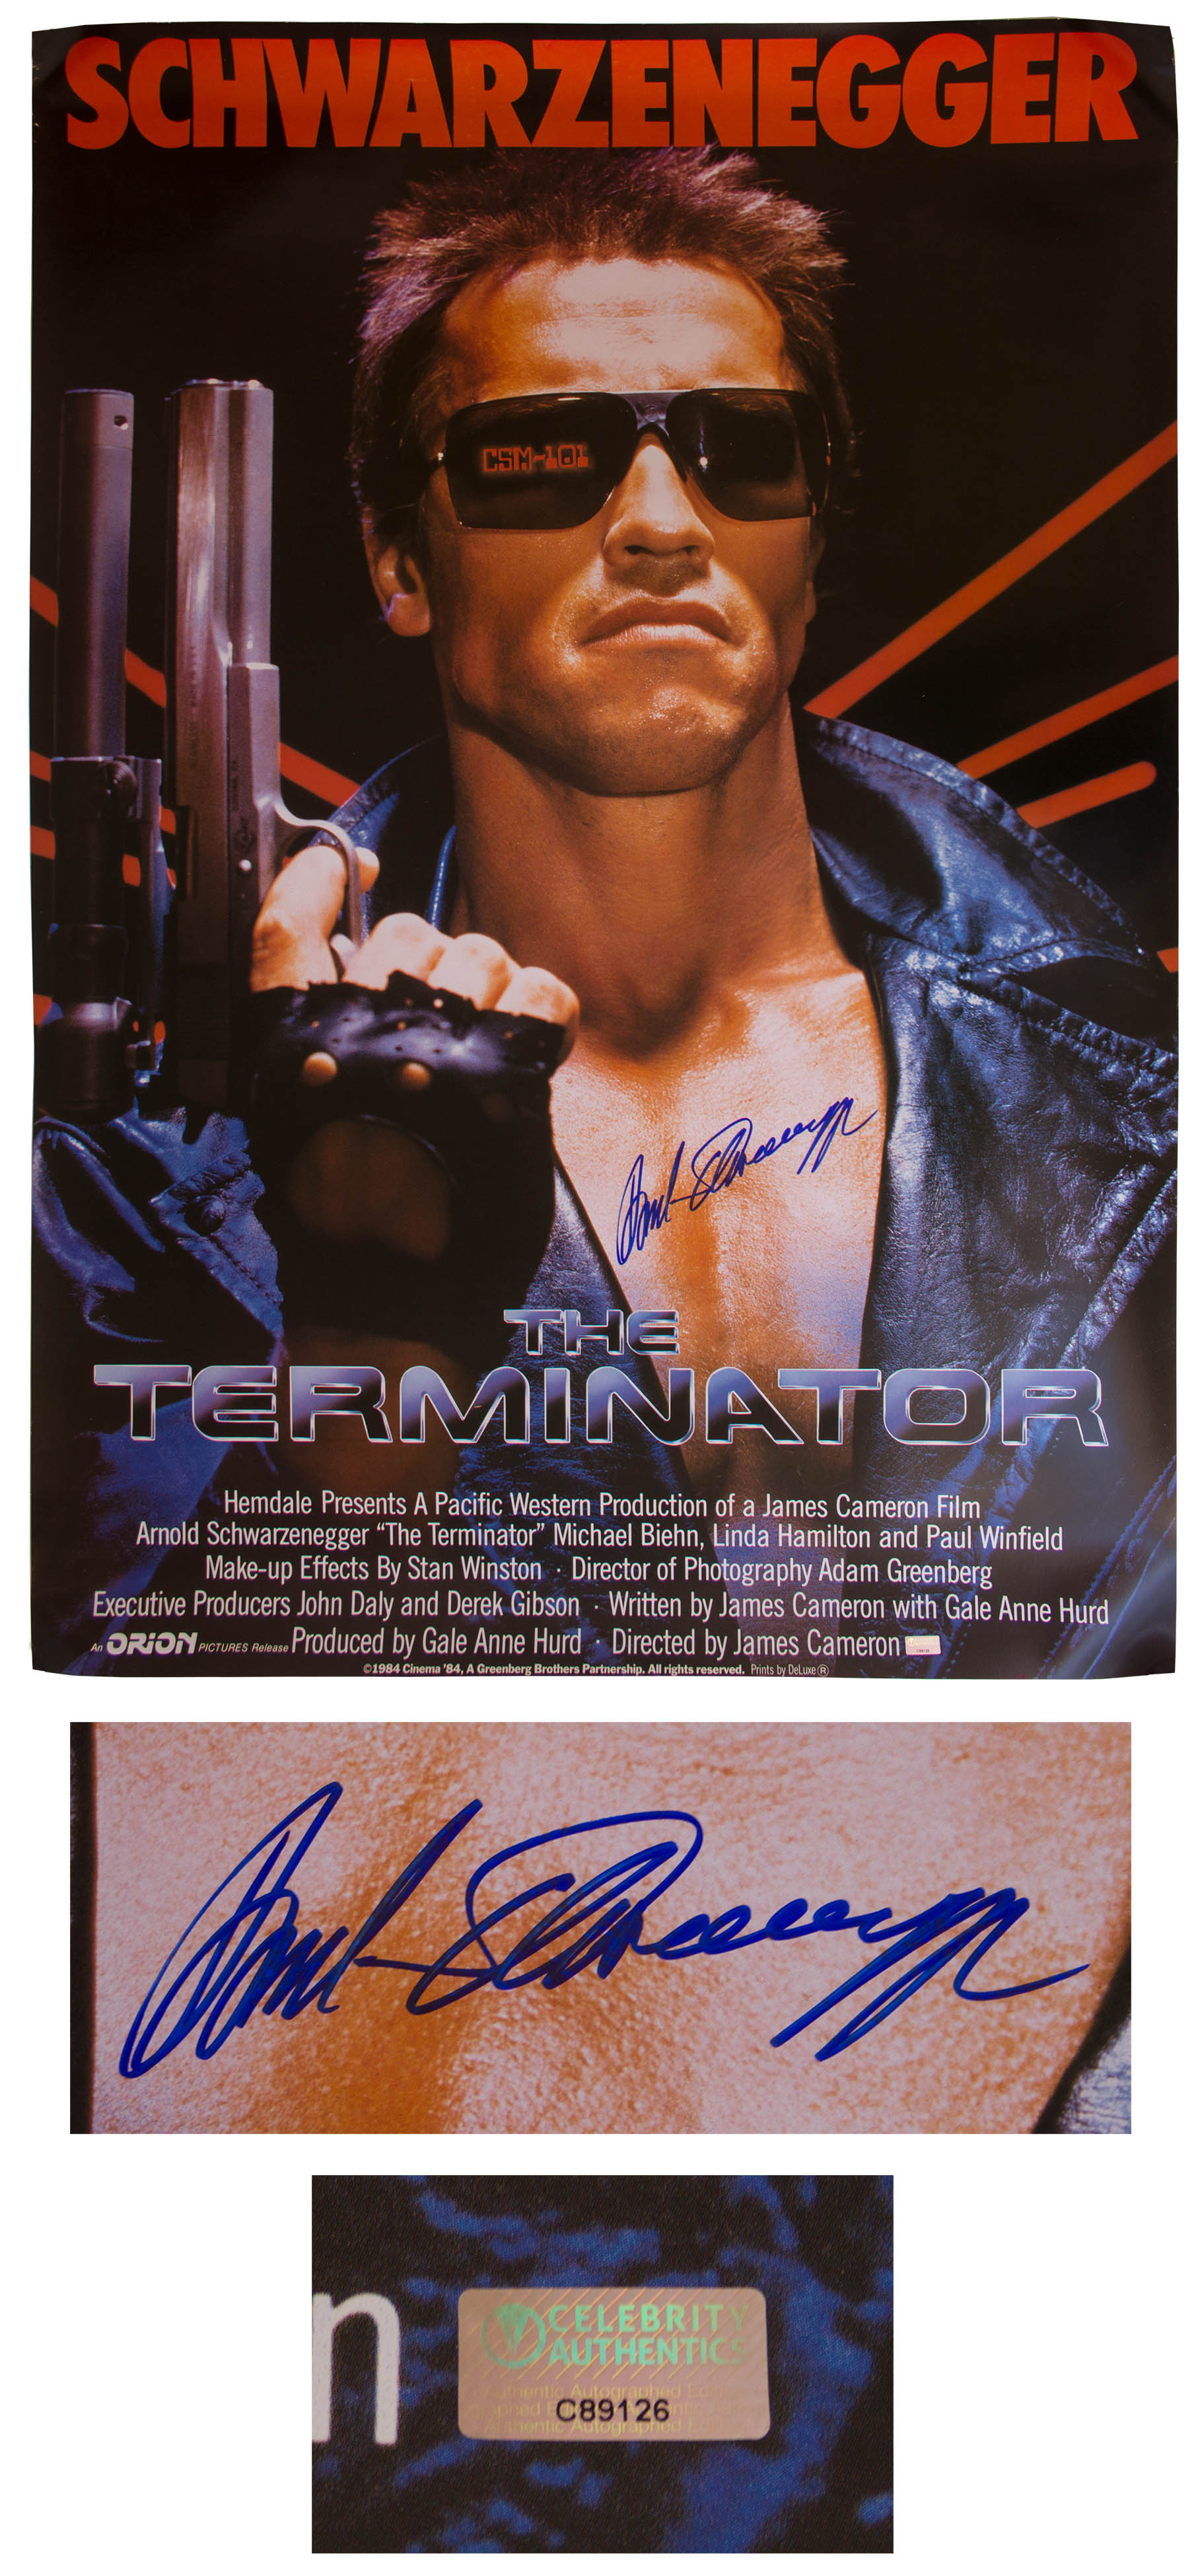 Arnold Schwarzenegger Signed The Terminator Movie Poster From 1984